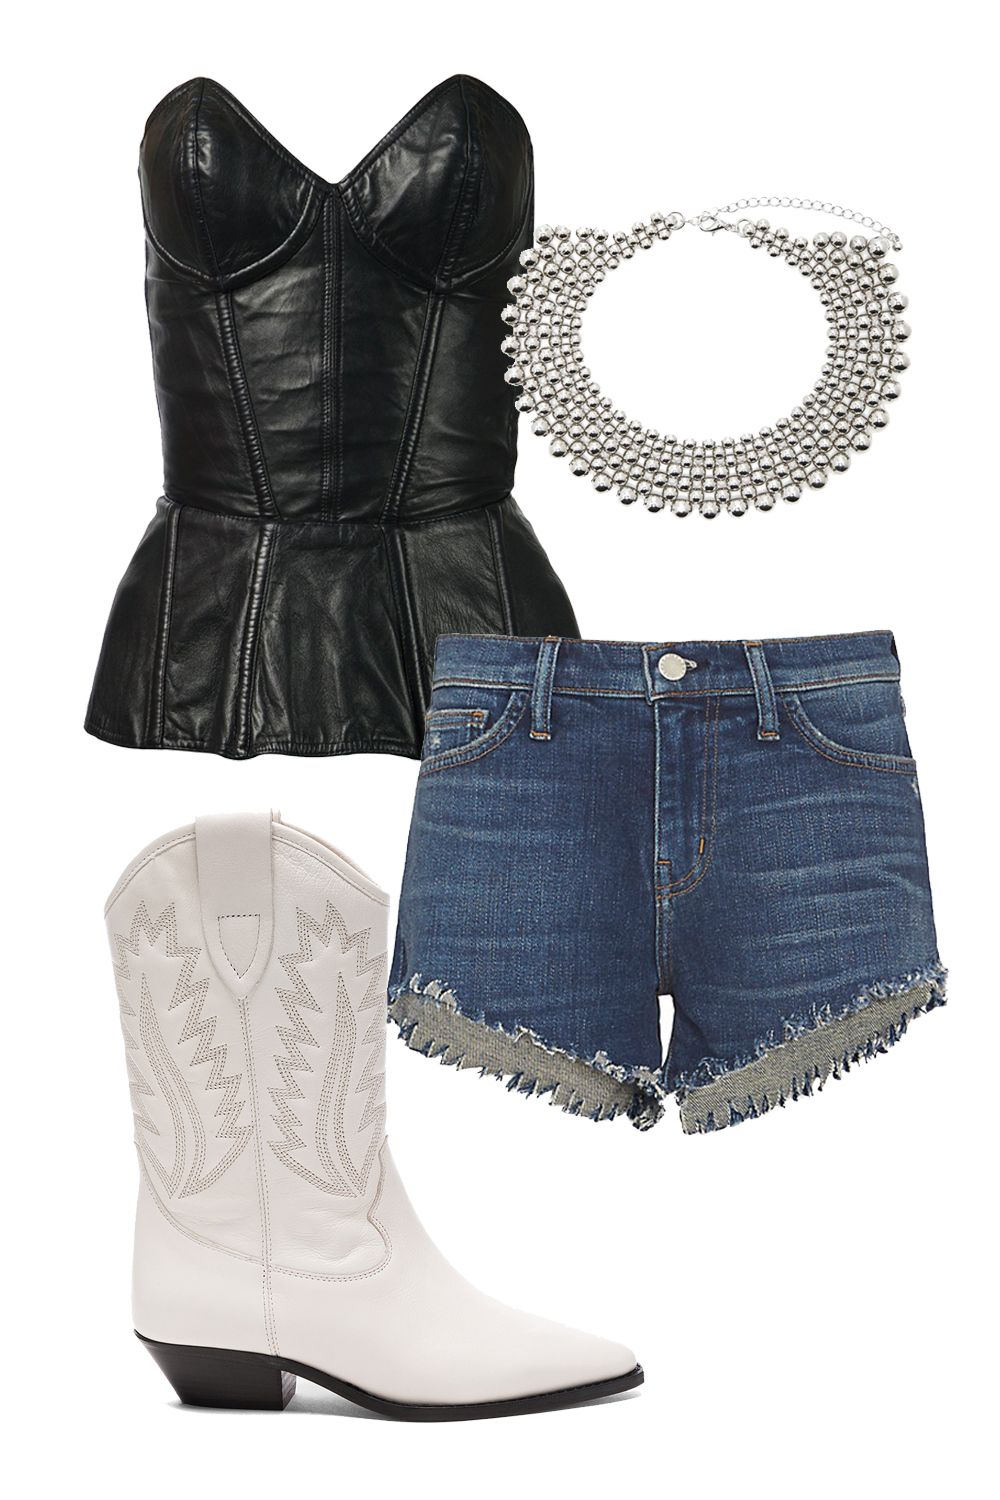 "<p>Your 2017 astrological style challenge: To merge the urge for comfort with the siren's song of your inner seductress. Nail that elusive paradox by building an outfit around a badass leather bustier. (Real or vegan, your choice.) Wear with a long skirt—or itty-bitty denim shorts—and cowboy-style booties. Your sign rules the throat so don't forget the essential accessory: a statement choker. The bigger and more ornate, the better.</p><p><em data-redactor-tag=""em"" data-verified=""redactor"">L'Agence Zoe Perfect Blue Shorts, $185; <a href=""https://www.intermixonline.com/product/l%27agence+zoe+perfect+blue+shorts.do?sortby=ourPicks&from=fn&"">intermixonline.com</a> </em></p><p><em data-redactor-tag=""em"" data-verified=""redactor"">Isabel Marant Etoile Leather Dallin Boots, $780; <a href=""http://www.fwrd.com/product-leather-dallin-boots/ETOI-WZ47/?d=Womens"">fwrd.com</a> </em></p><p><em data-redactor-tag=""em"" data-verified=""redactor"">Fleur du Mal Leather Bustier, $1,917; <a href=""https://www.farfetch.com/ca/shopping/women/fleur-du-mal-leather-bustier-item-11025410.aspx?storeid=9795&from=search&ffref=lp_pic_24_20_"">farfetch.com</a> </em></p><p><em data-redactor-tag=""em"" data-verified=""redactor"">Forever 21 Ball Chain Choker, $14; </em><a href=""http://www.forever21.com/Product/Product.aspx?br=F21&category=ACC&productid=1000084305""><em data-redactor-tag=""em"" data-verified=""redactor"">forever21.com</em></a></p>"